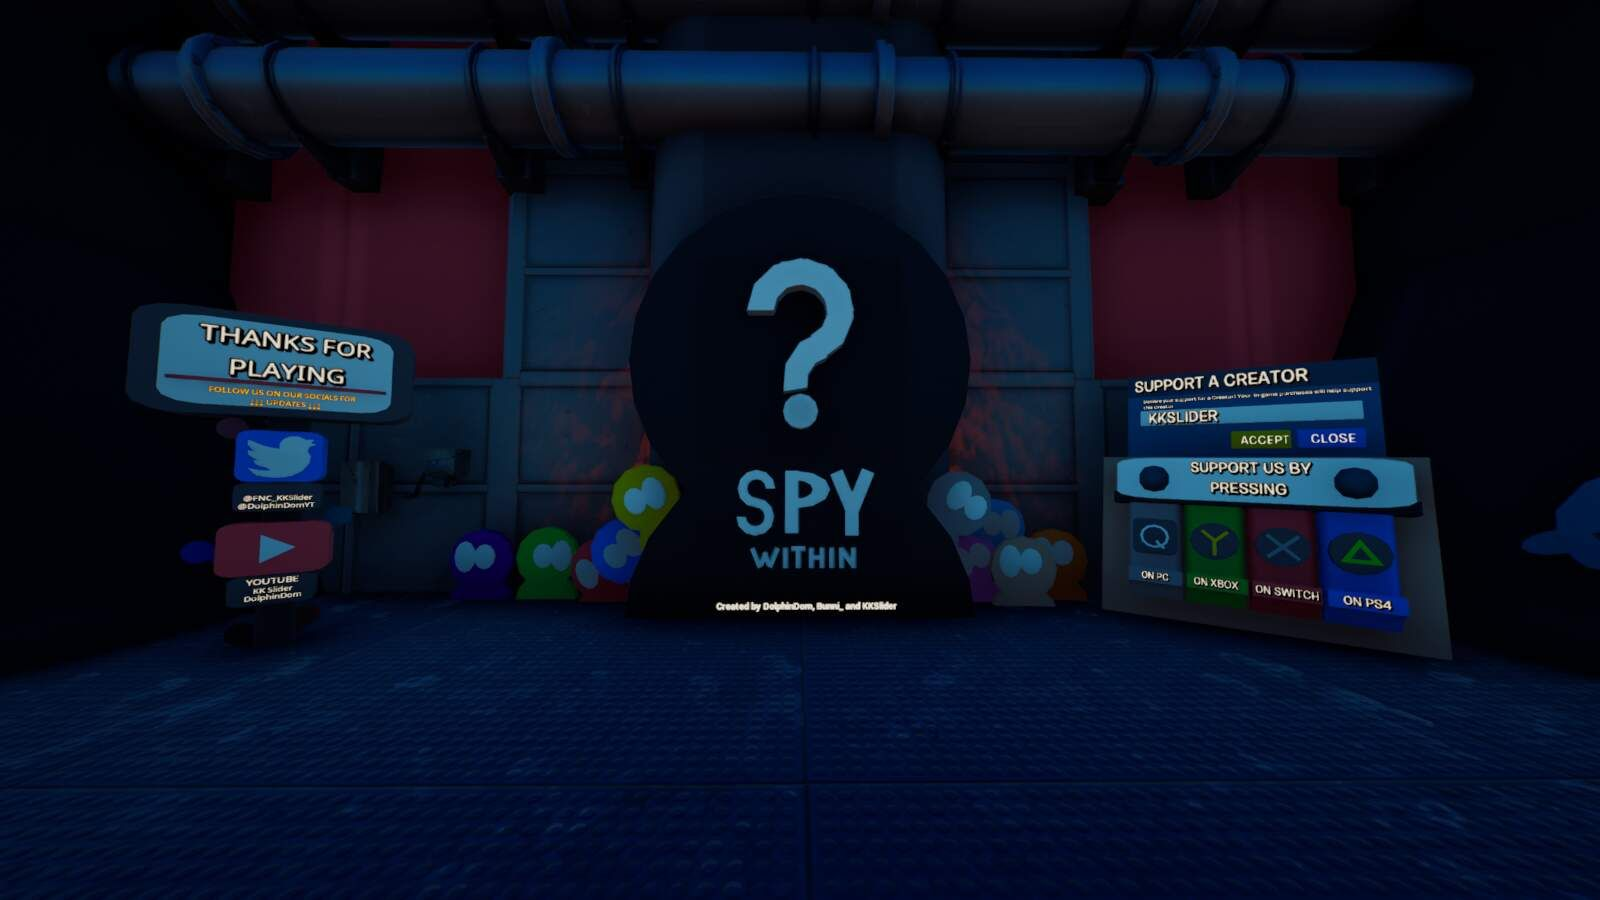 🕵️♂️ Spy Within 🔪 0288-3600-7090 by kkslider